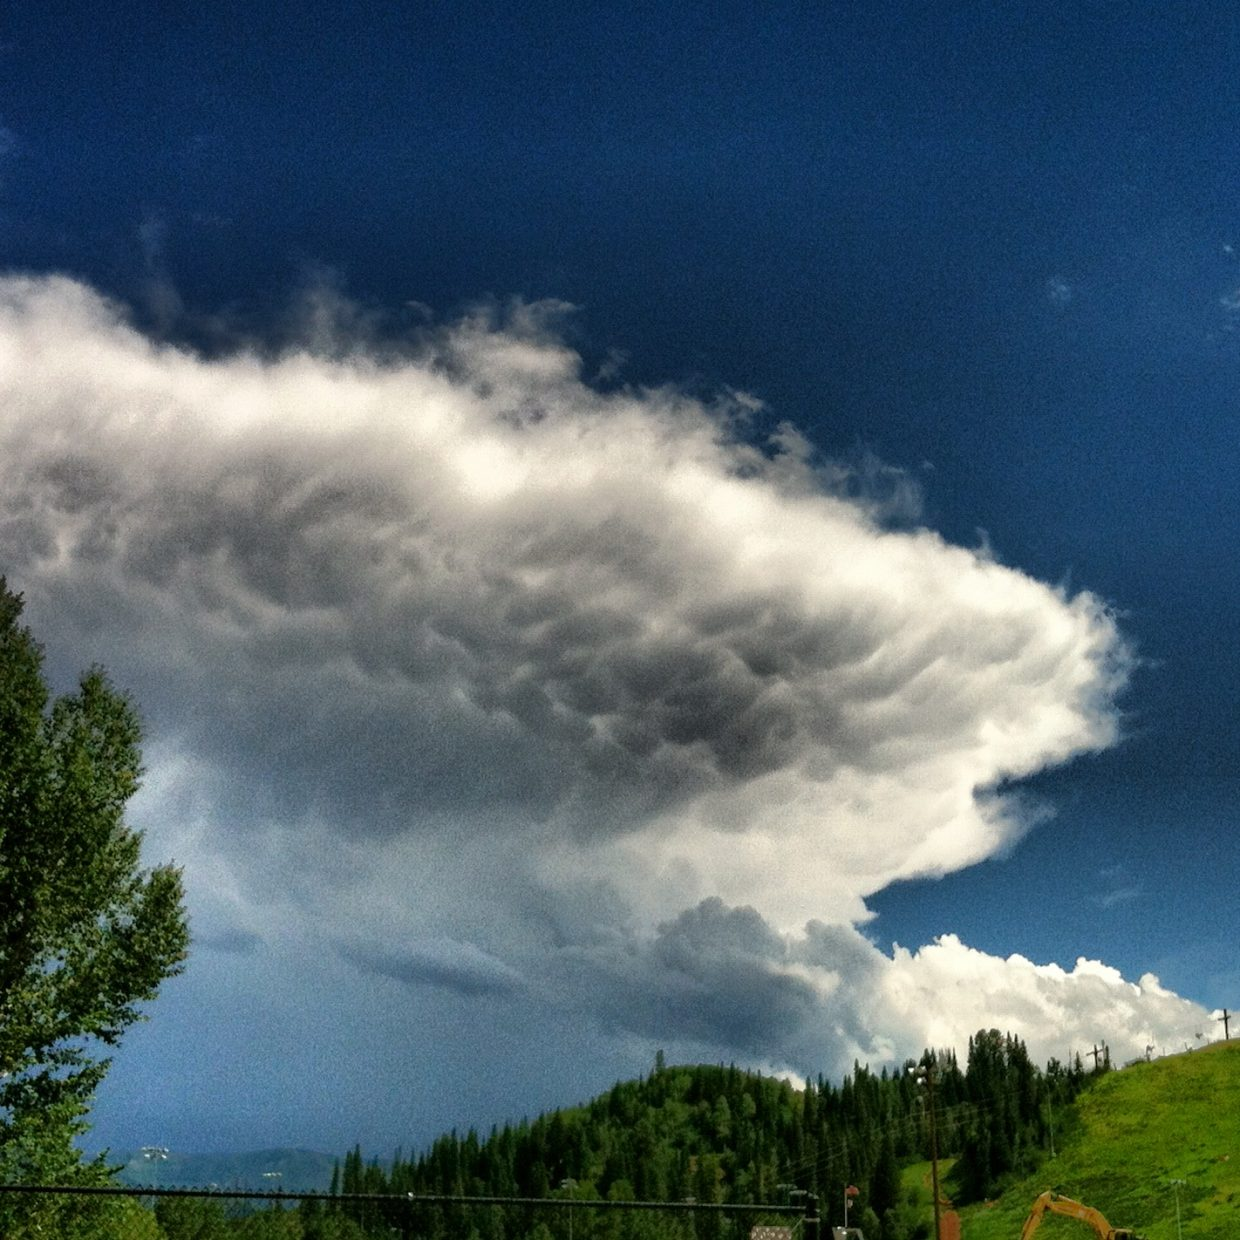 Taken at Howelsen Hill on July 17. Submitted by: Brandon Skaggs